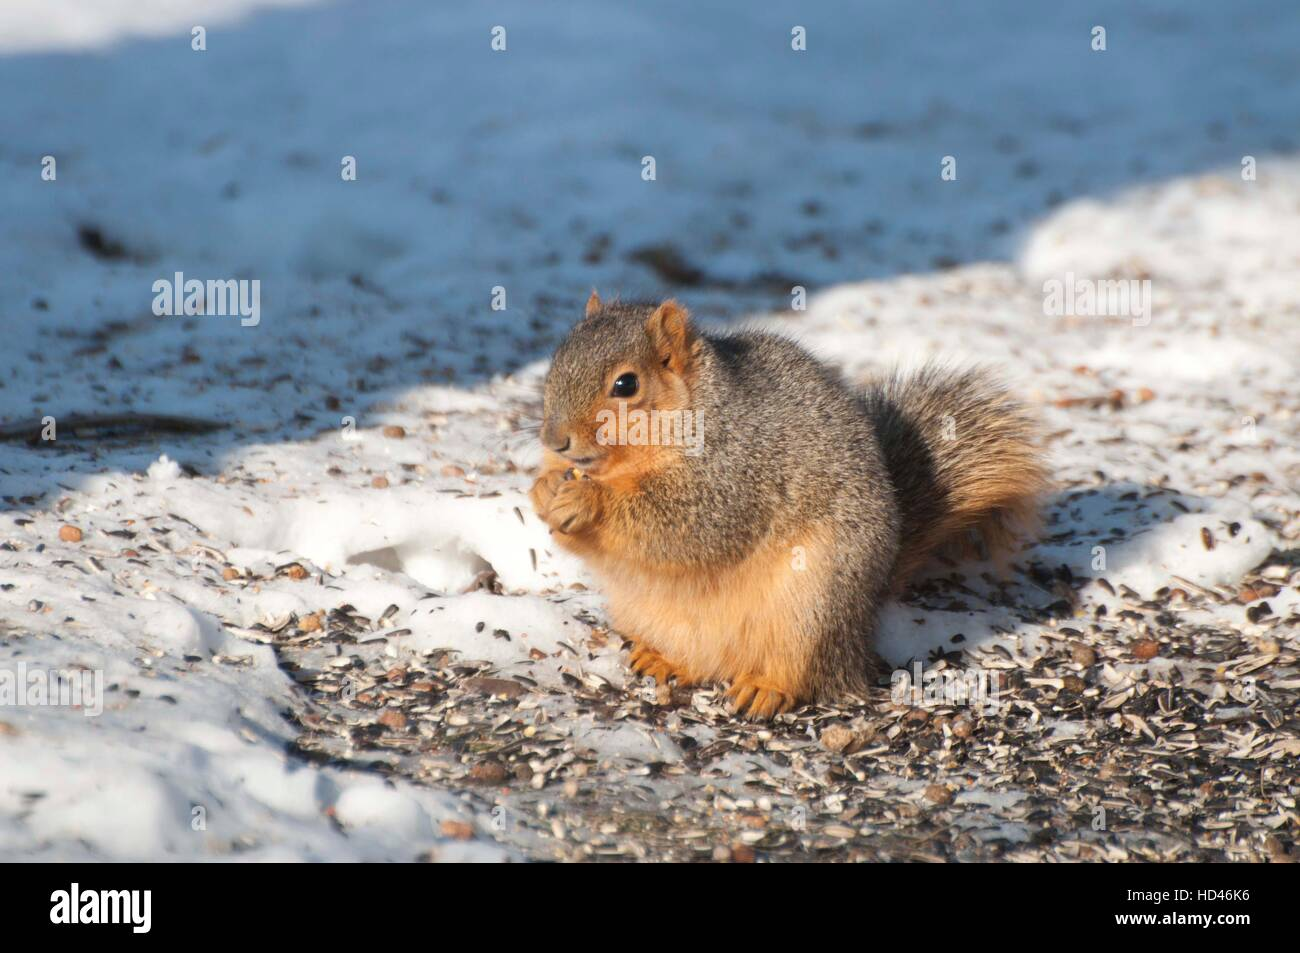 Fox squirrel sitting up on ice-covered ground Stock Photo